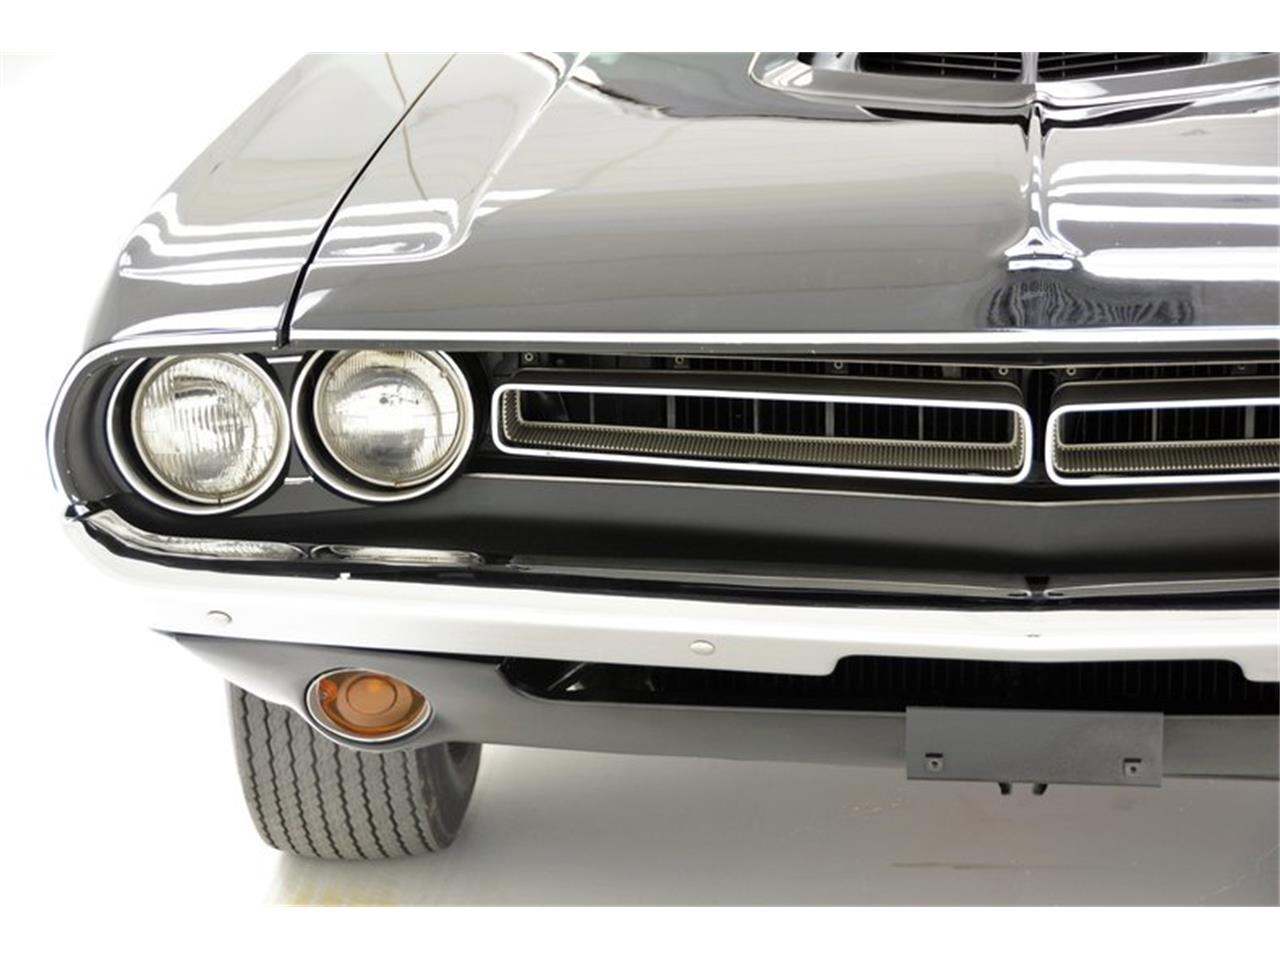 Large Picture of '71 Dodge Challenger R/T - $195,000.00 - MZFX